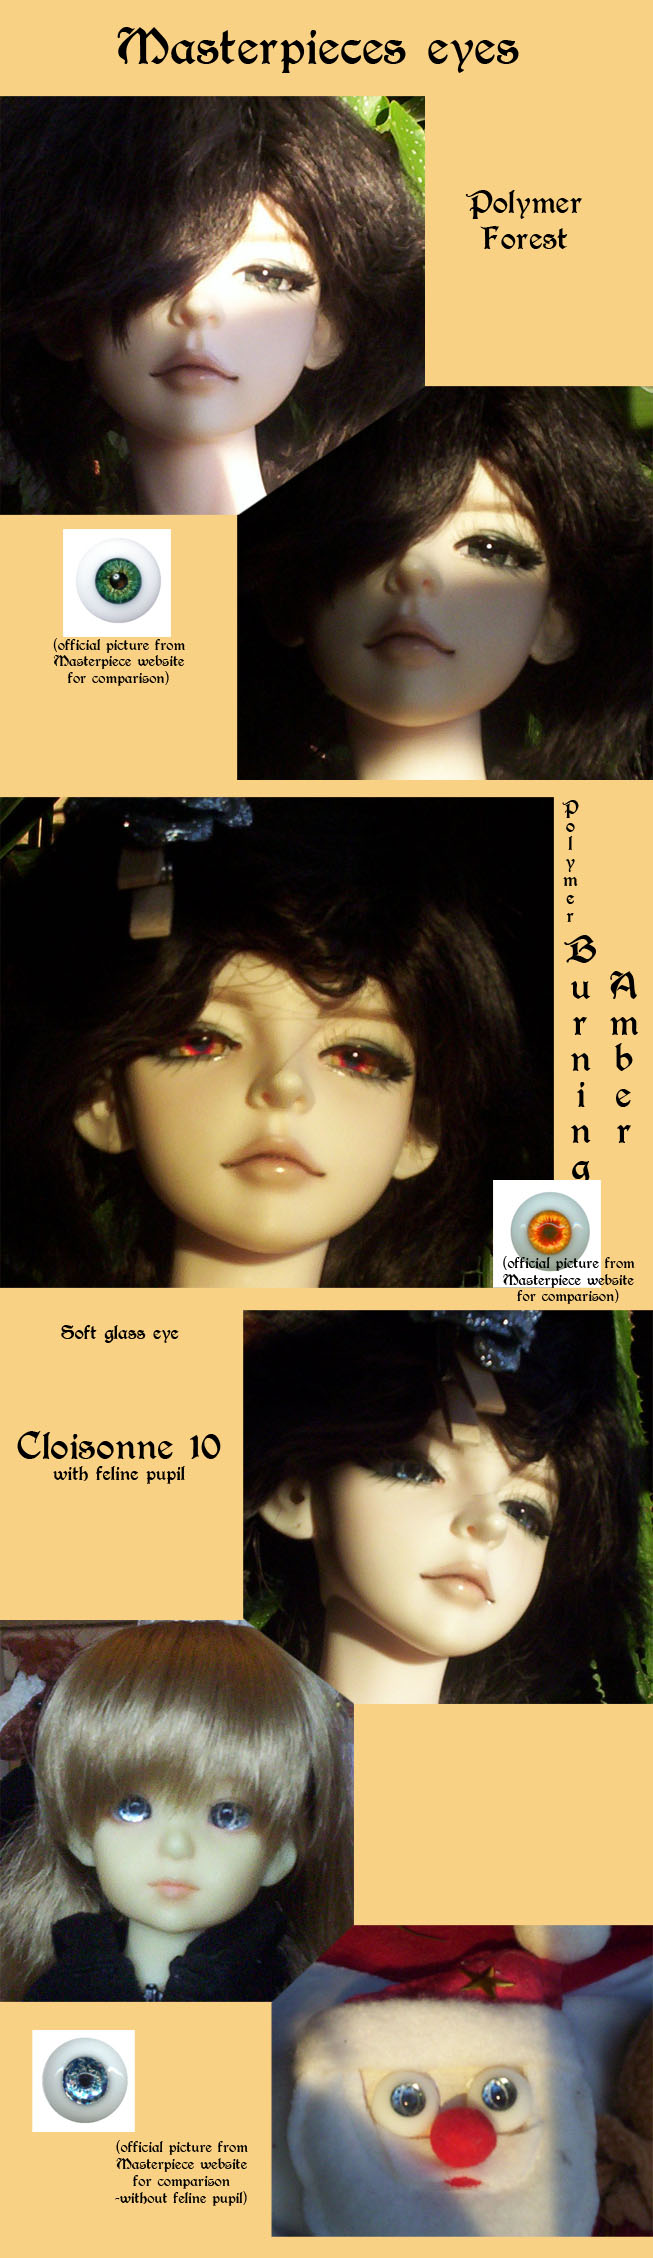 Galerie/database Yeux Masterpiece Masterpiece_eyes_1_by_Monsieur_Cheval